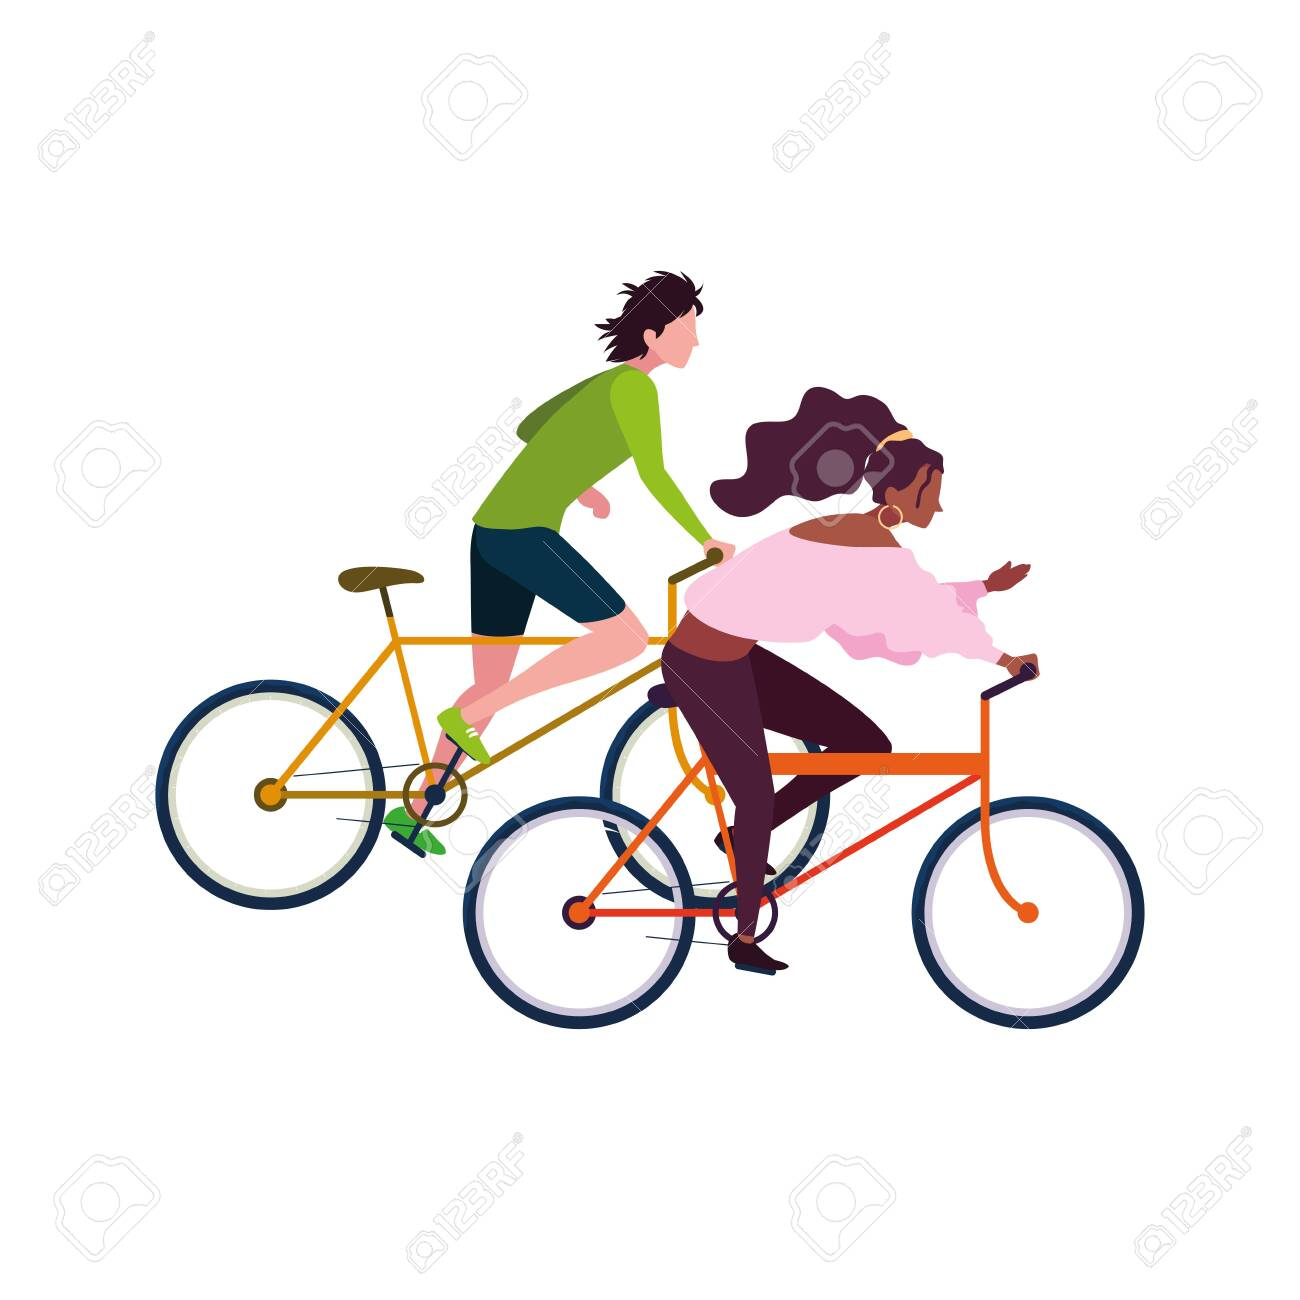 man and woman riding bicycle activity image vector illustration - 154616854